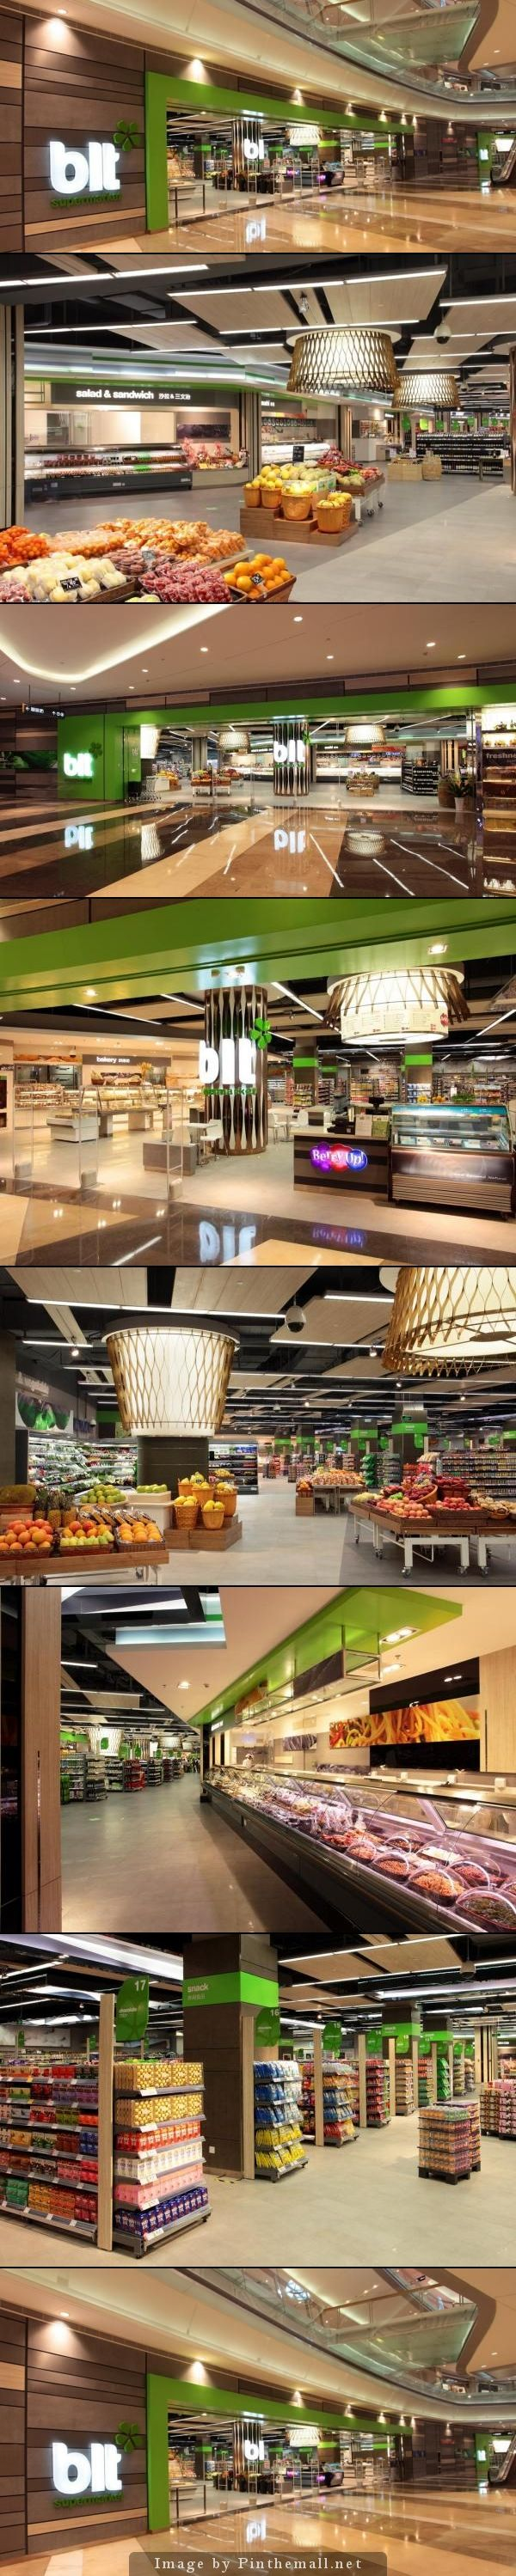 Upper Design - Design Estratégico para Varejo www.facebook.com/upperdesignpoa #upper design #retail design #retail social media marketing #shops blt* supermarket, kk mall, shenzhen